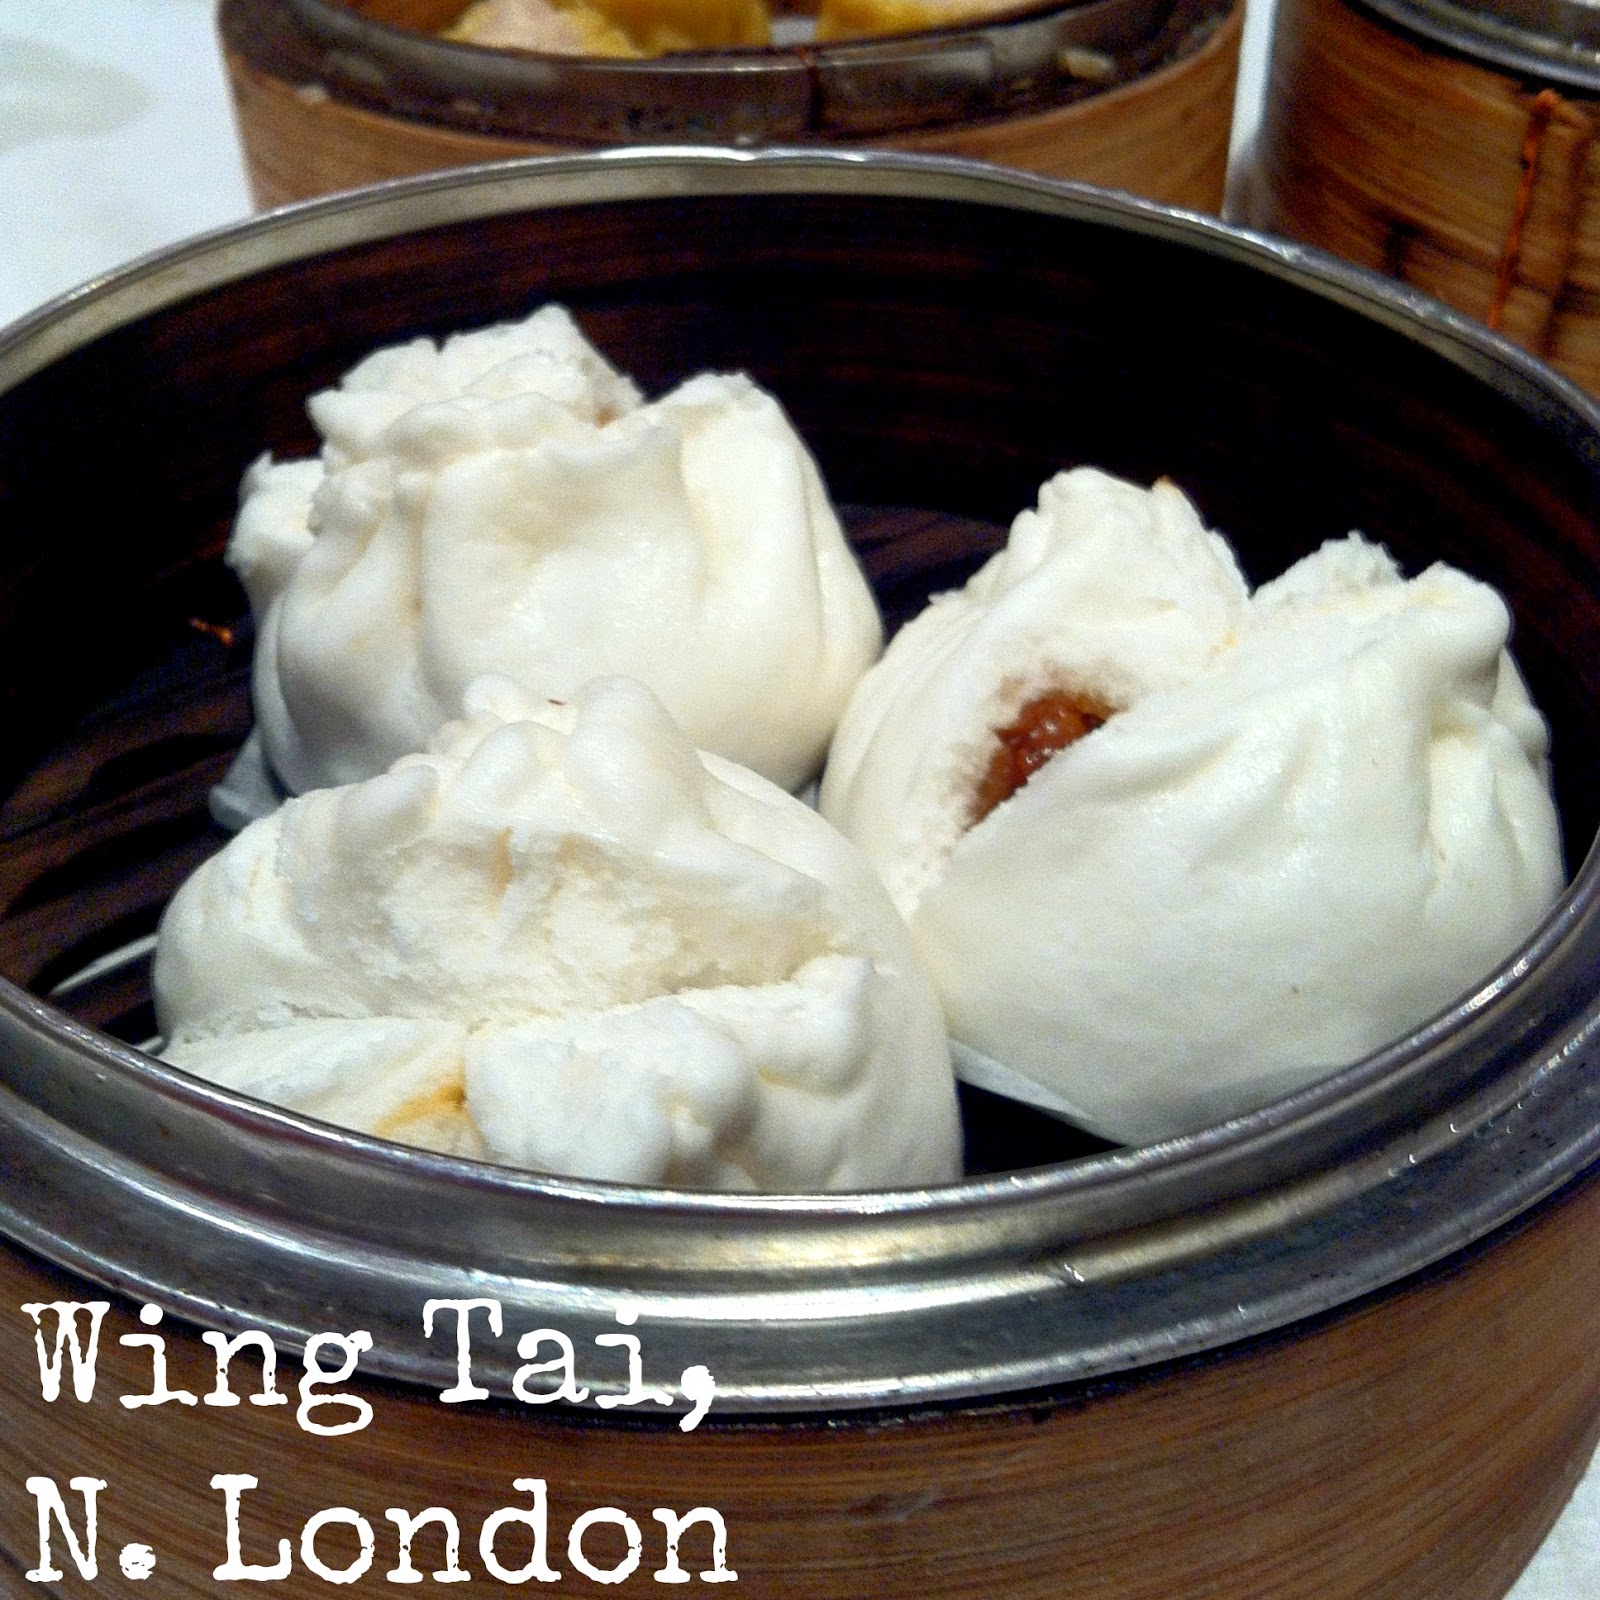 A break from work today means a trip to Wing Tai - delicious dim sum near Staples Corner in London! Here I review the delicious dishes we sampled.